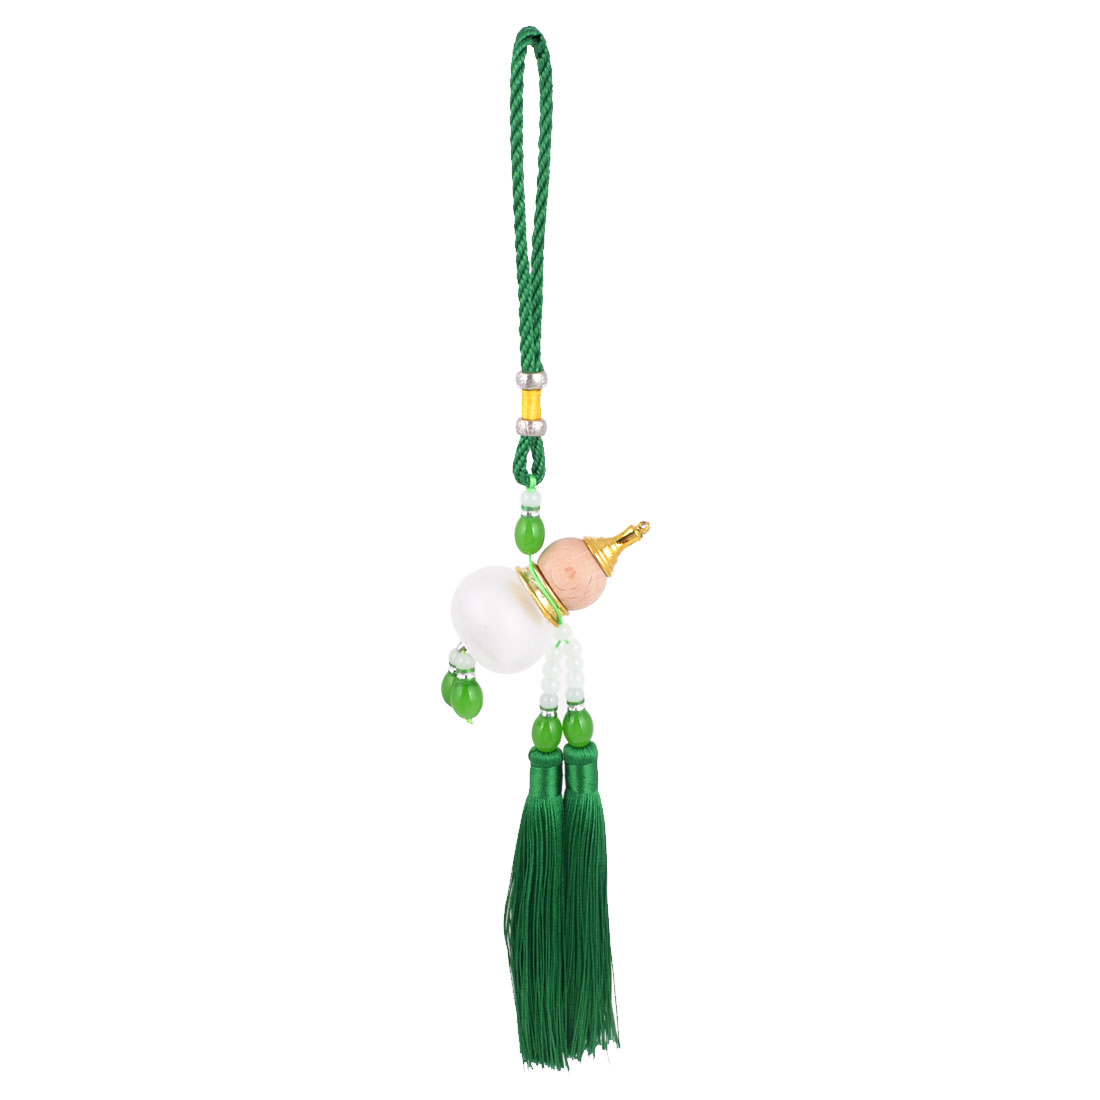 Pendant Tassels Green Beads Detail Cucurbit Perfume Bottle Wooden Calabash Car Hanging Decor